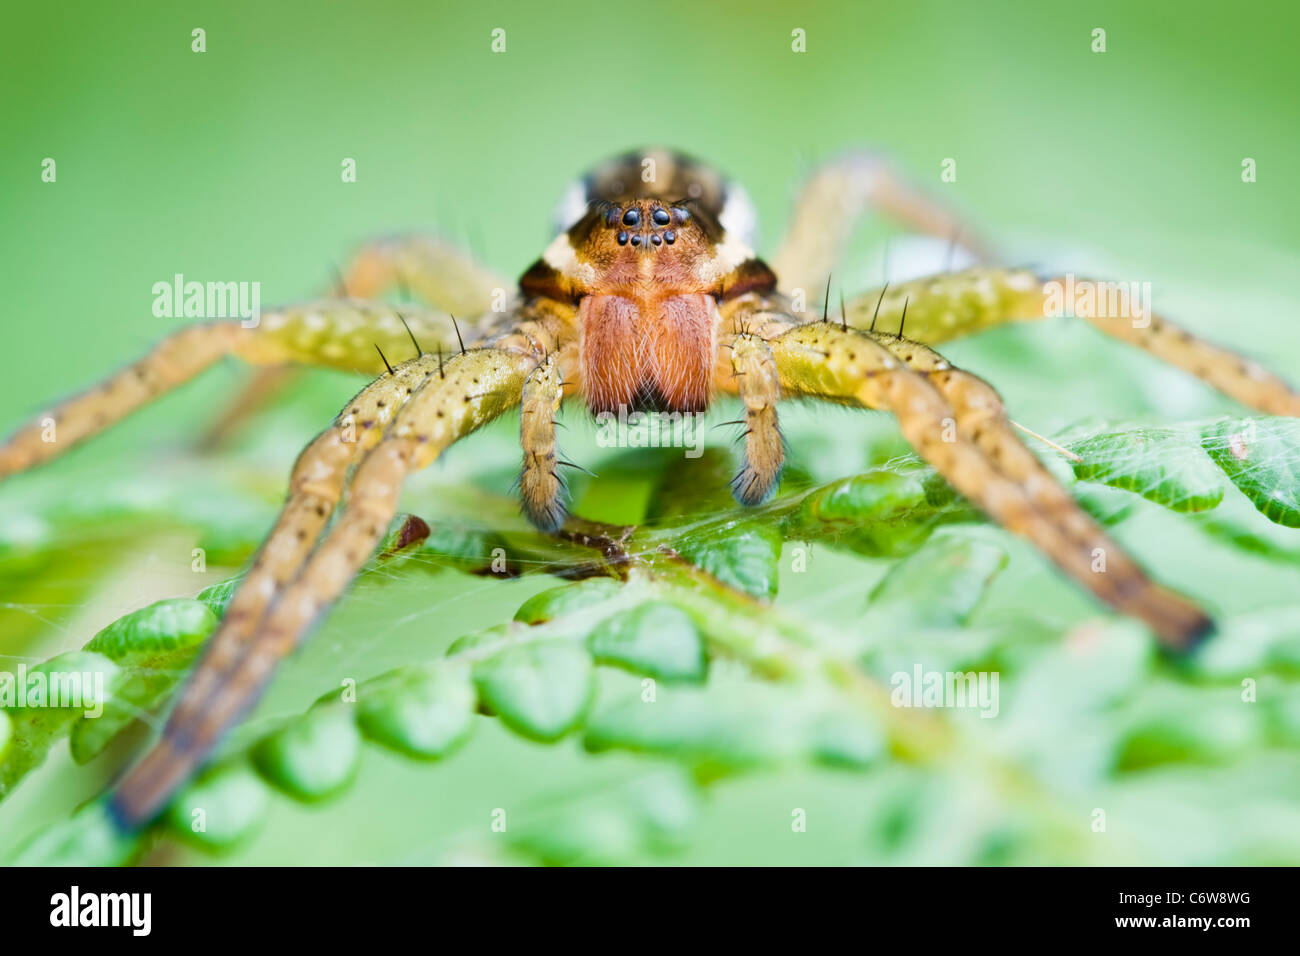 Raft Spider hunting on fern leaves - Stock Image